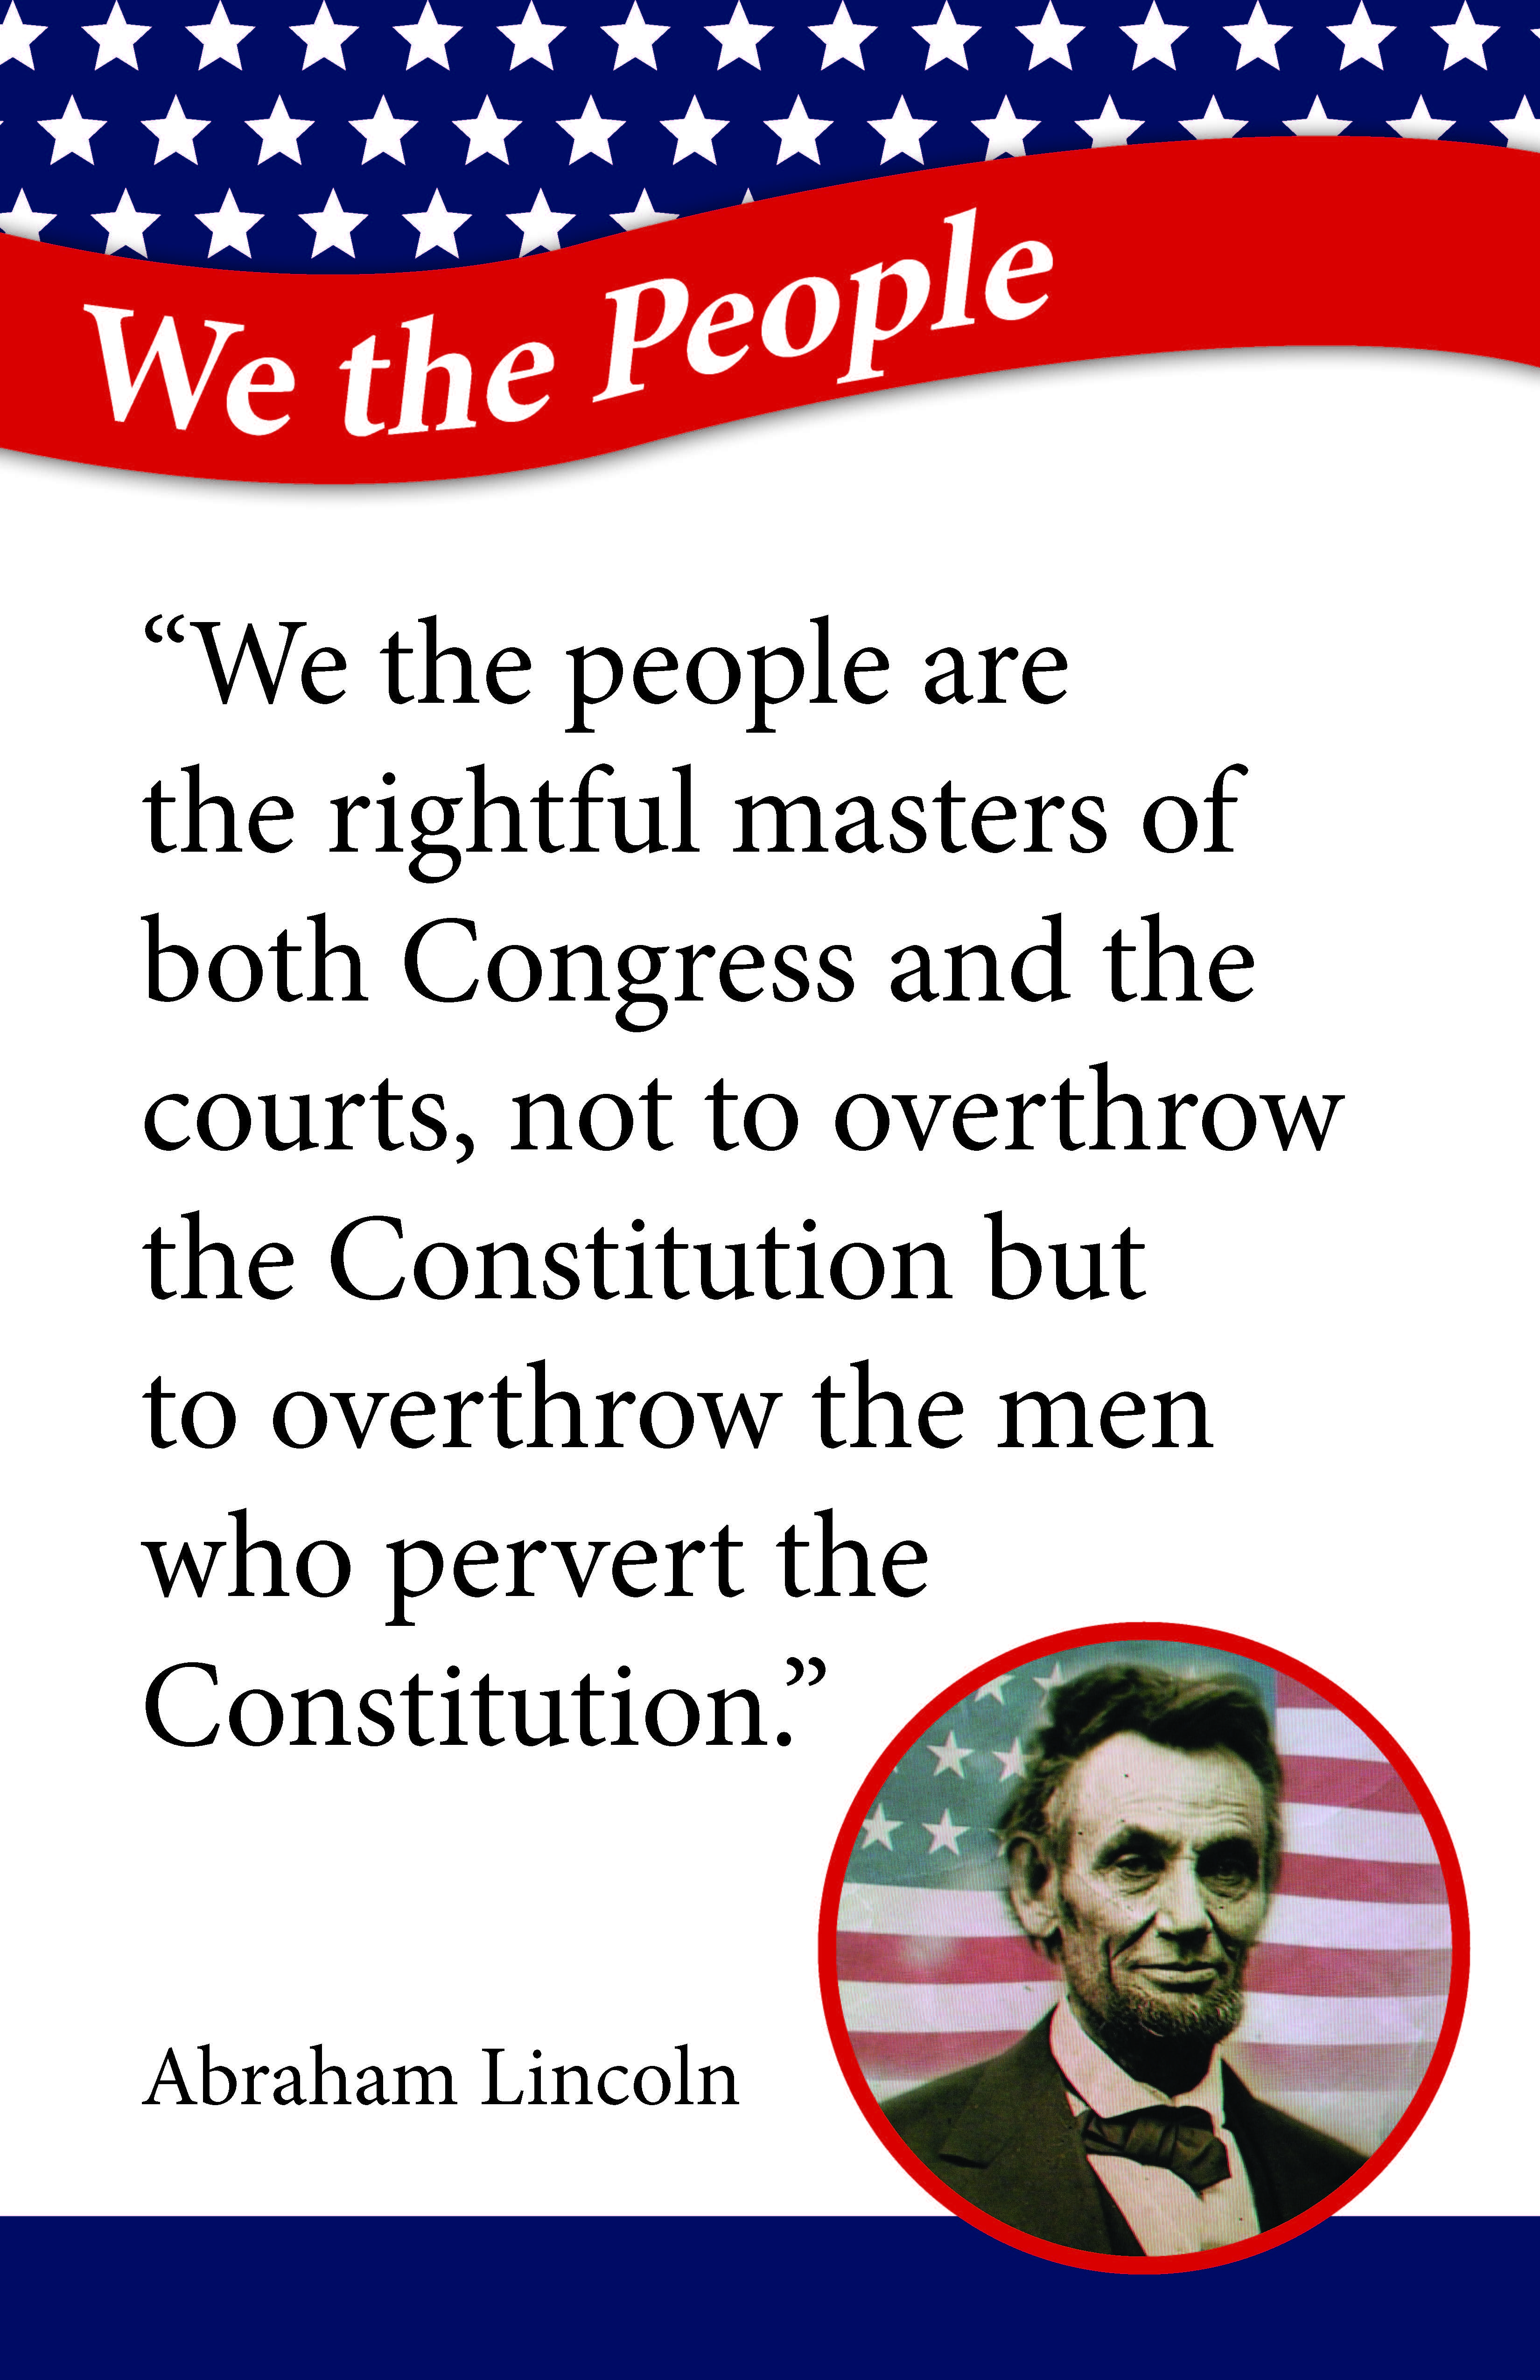 constitution_day_posters_11x17_Page_2